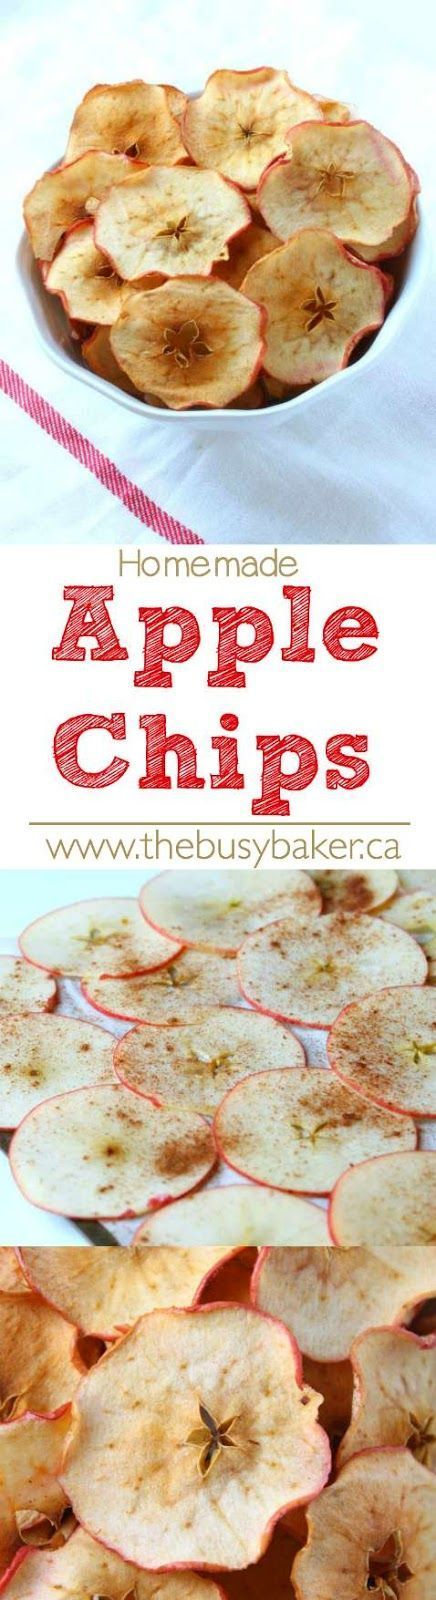 The Busy Baker: Homemade Apple Chips